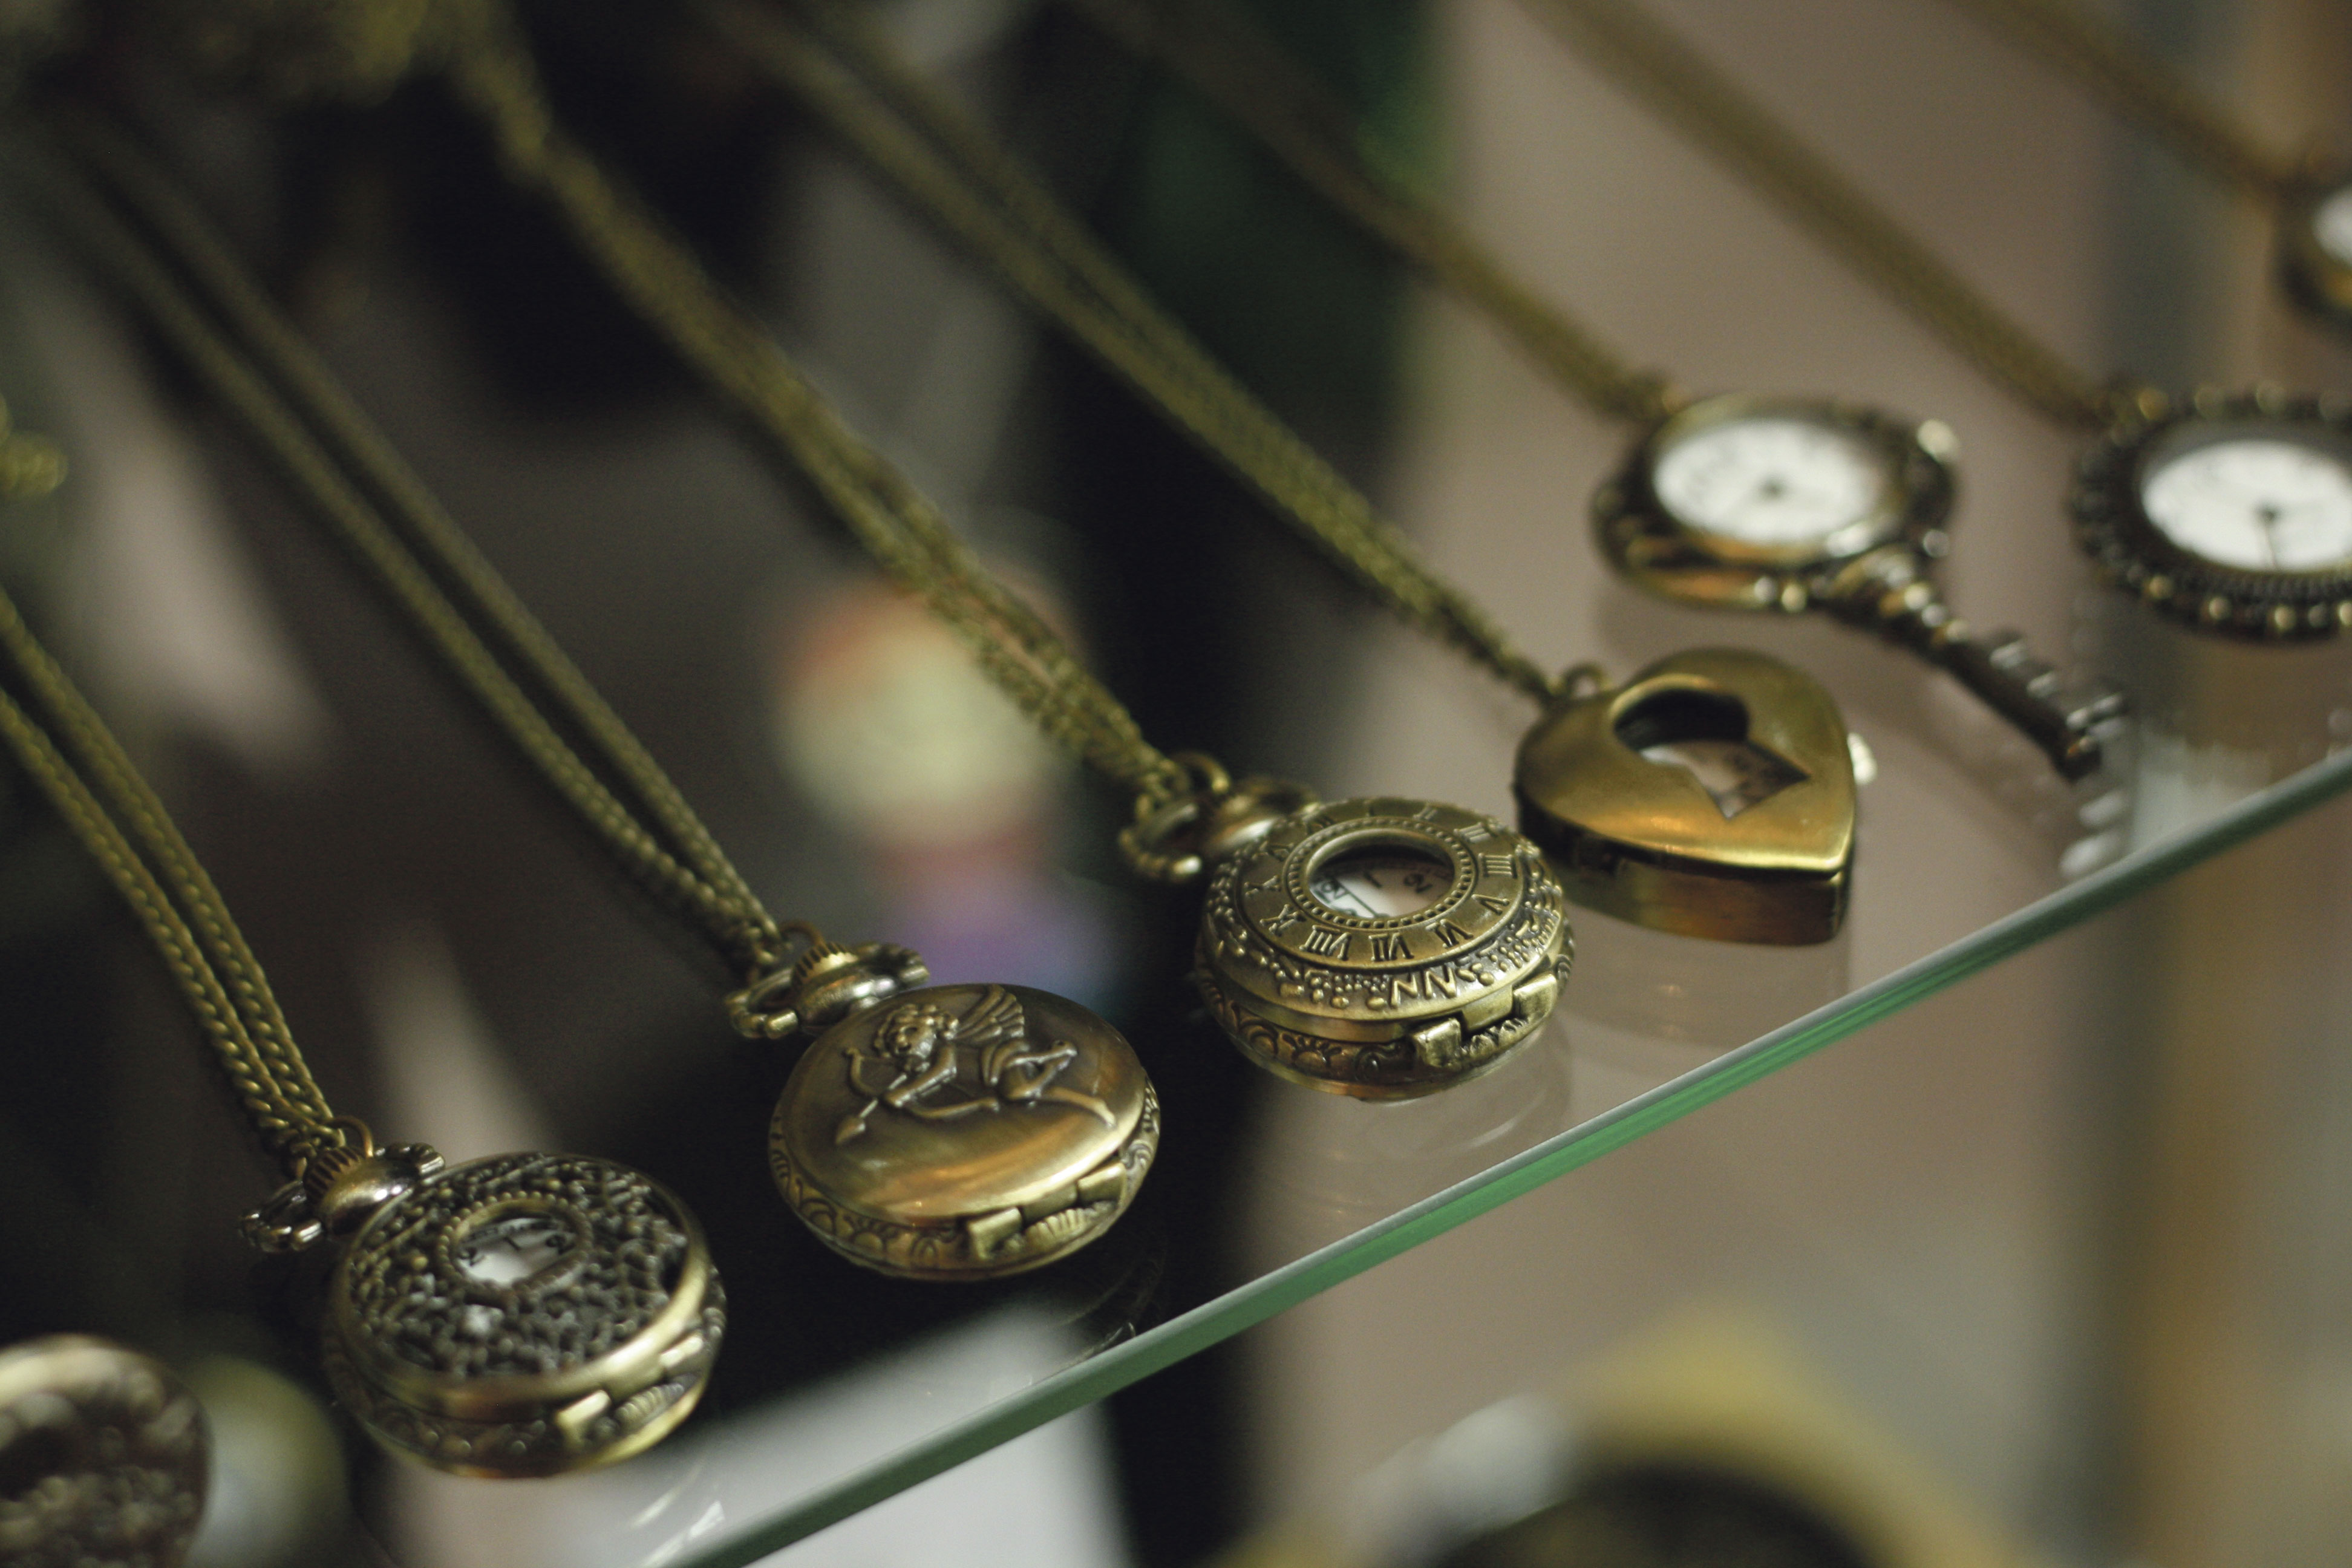 Vintage jewelry can add character and help update outfits (Photo by Heather Davidson)